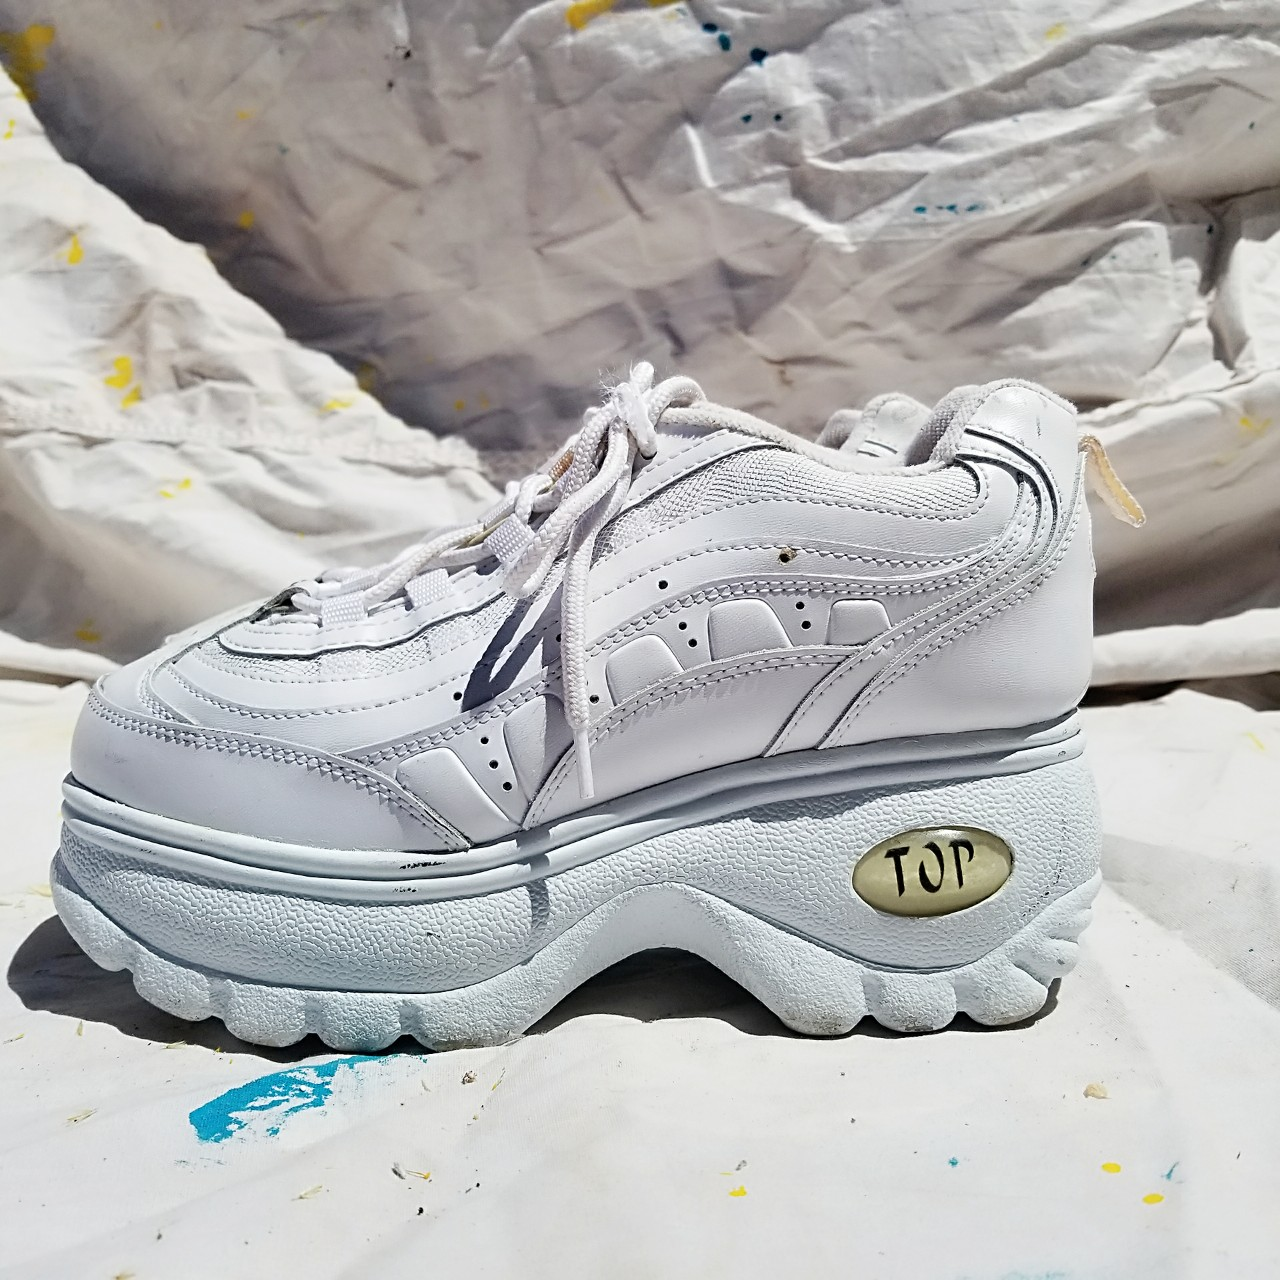 90s CHUNKY WHITE PLATFORM SNEAKERS